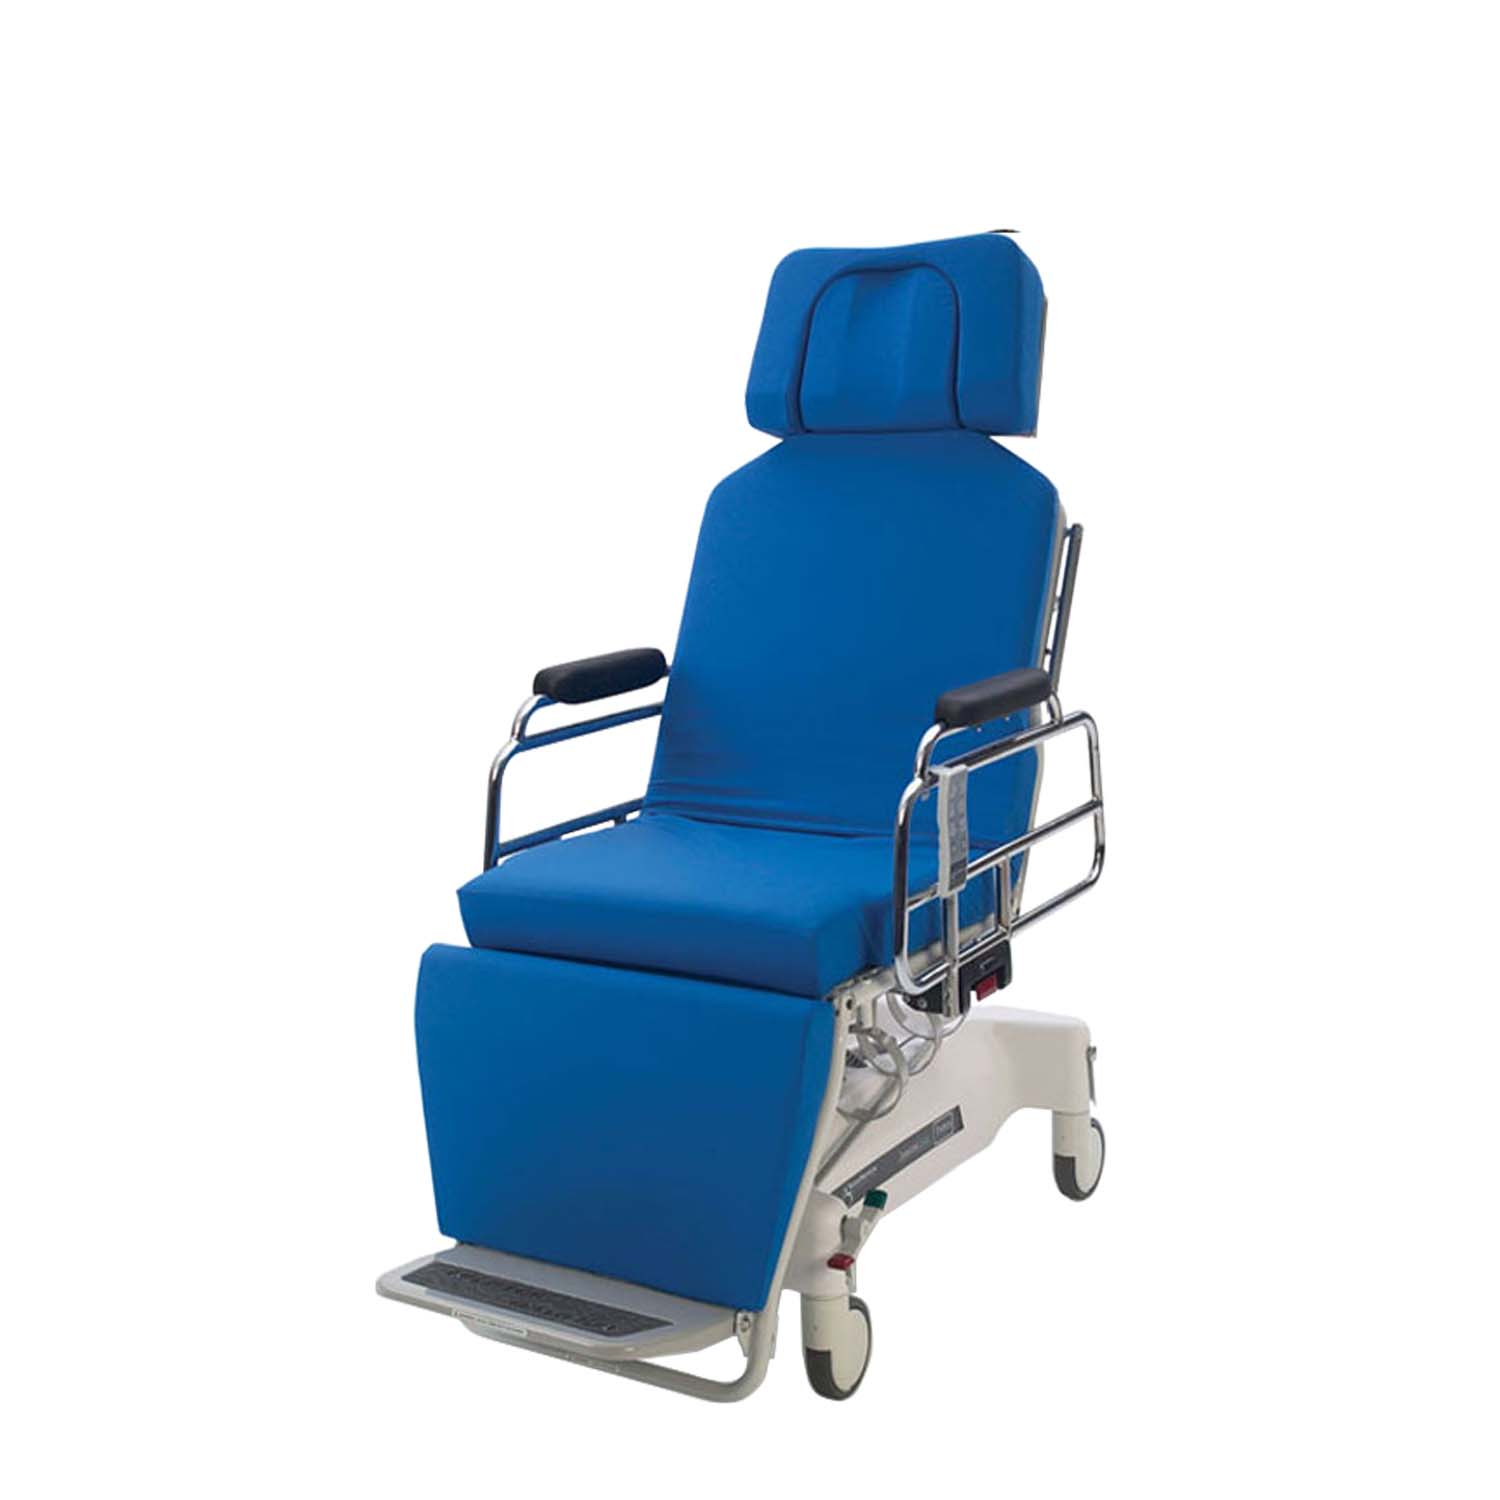 Stretcher Chair Transmotion Tmm5 Mobile Surgical Stretcher Chair